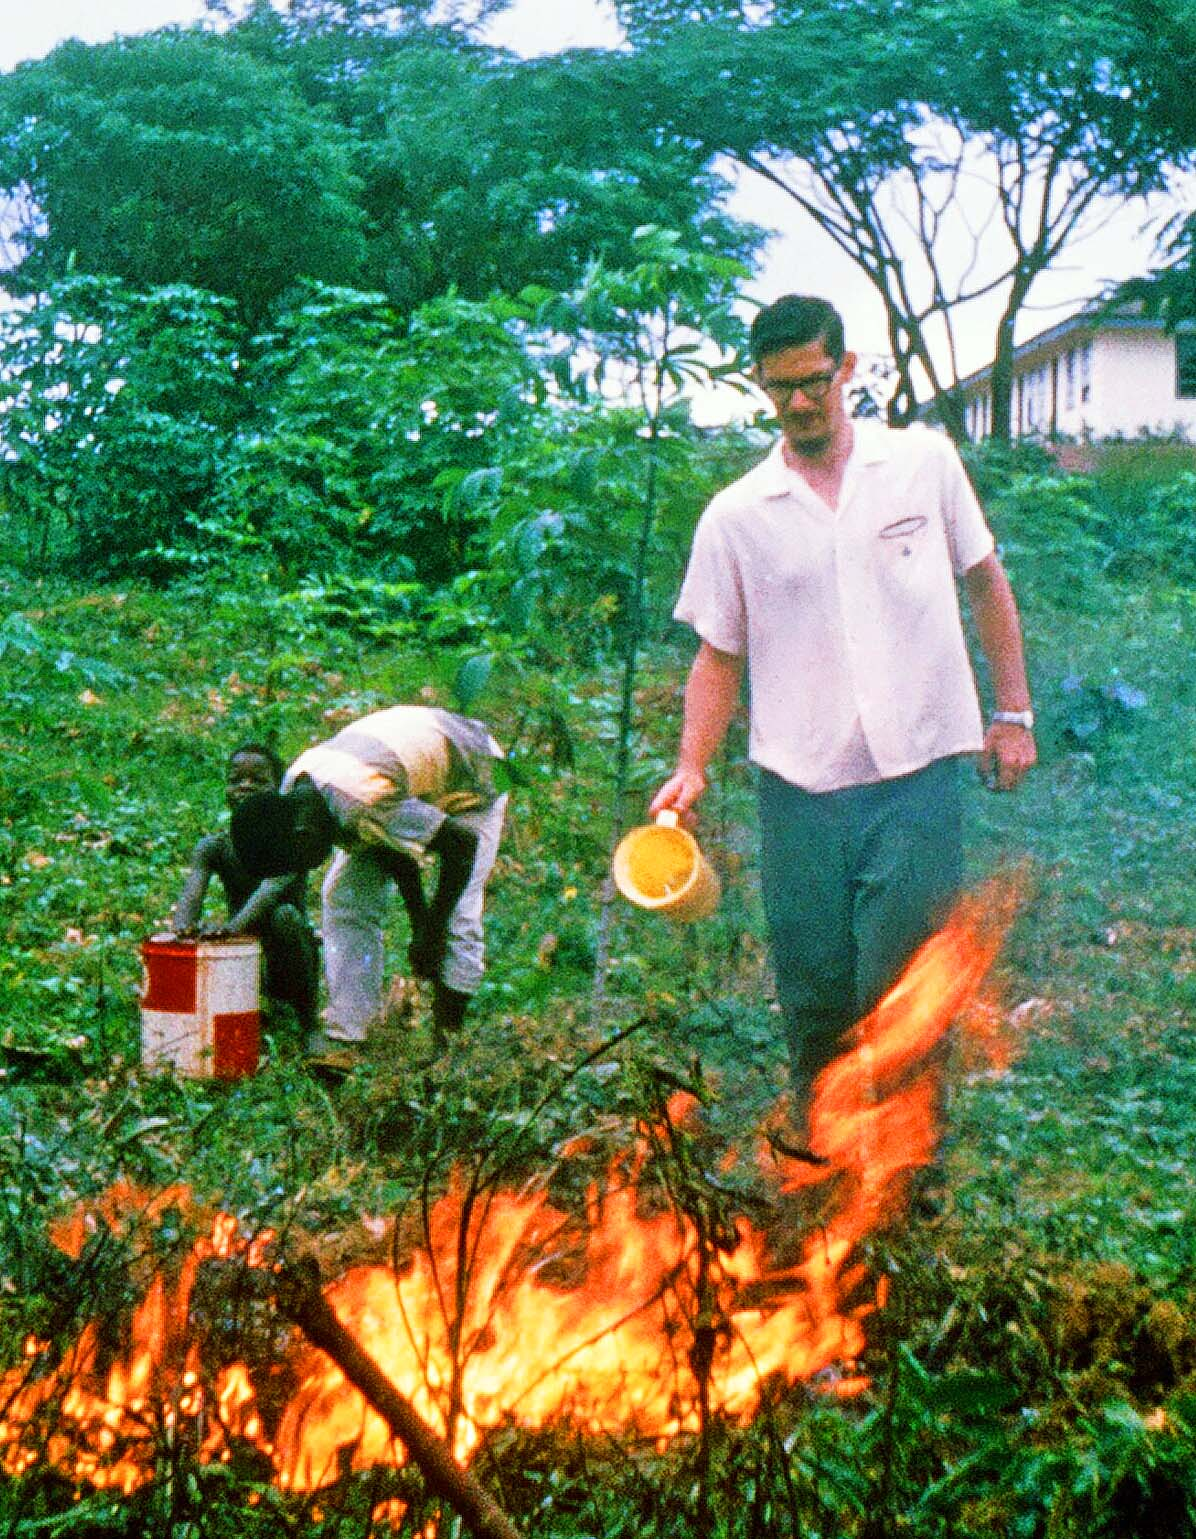 Burning out a nest of army ants in Gbarnga, Liberia circa 1966.